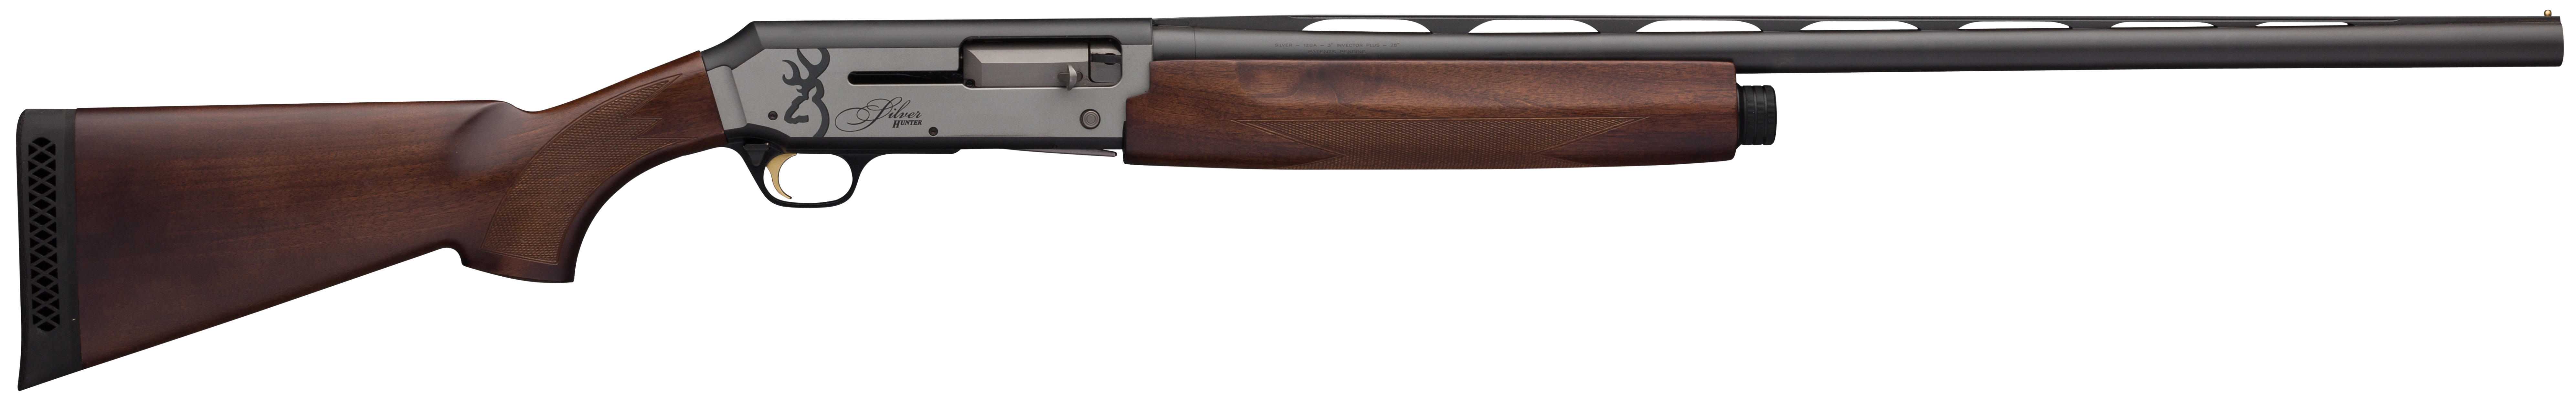 Browning Silver Hunter Semi-Auto Shotgun 3'' 20 Gauge 28'' Black/Silver Aluminum Alloy - Turkish Walnut